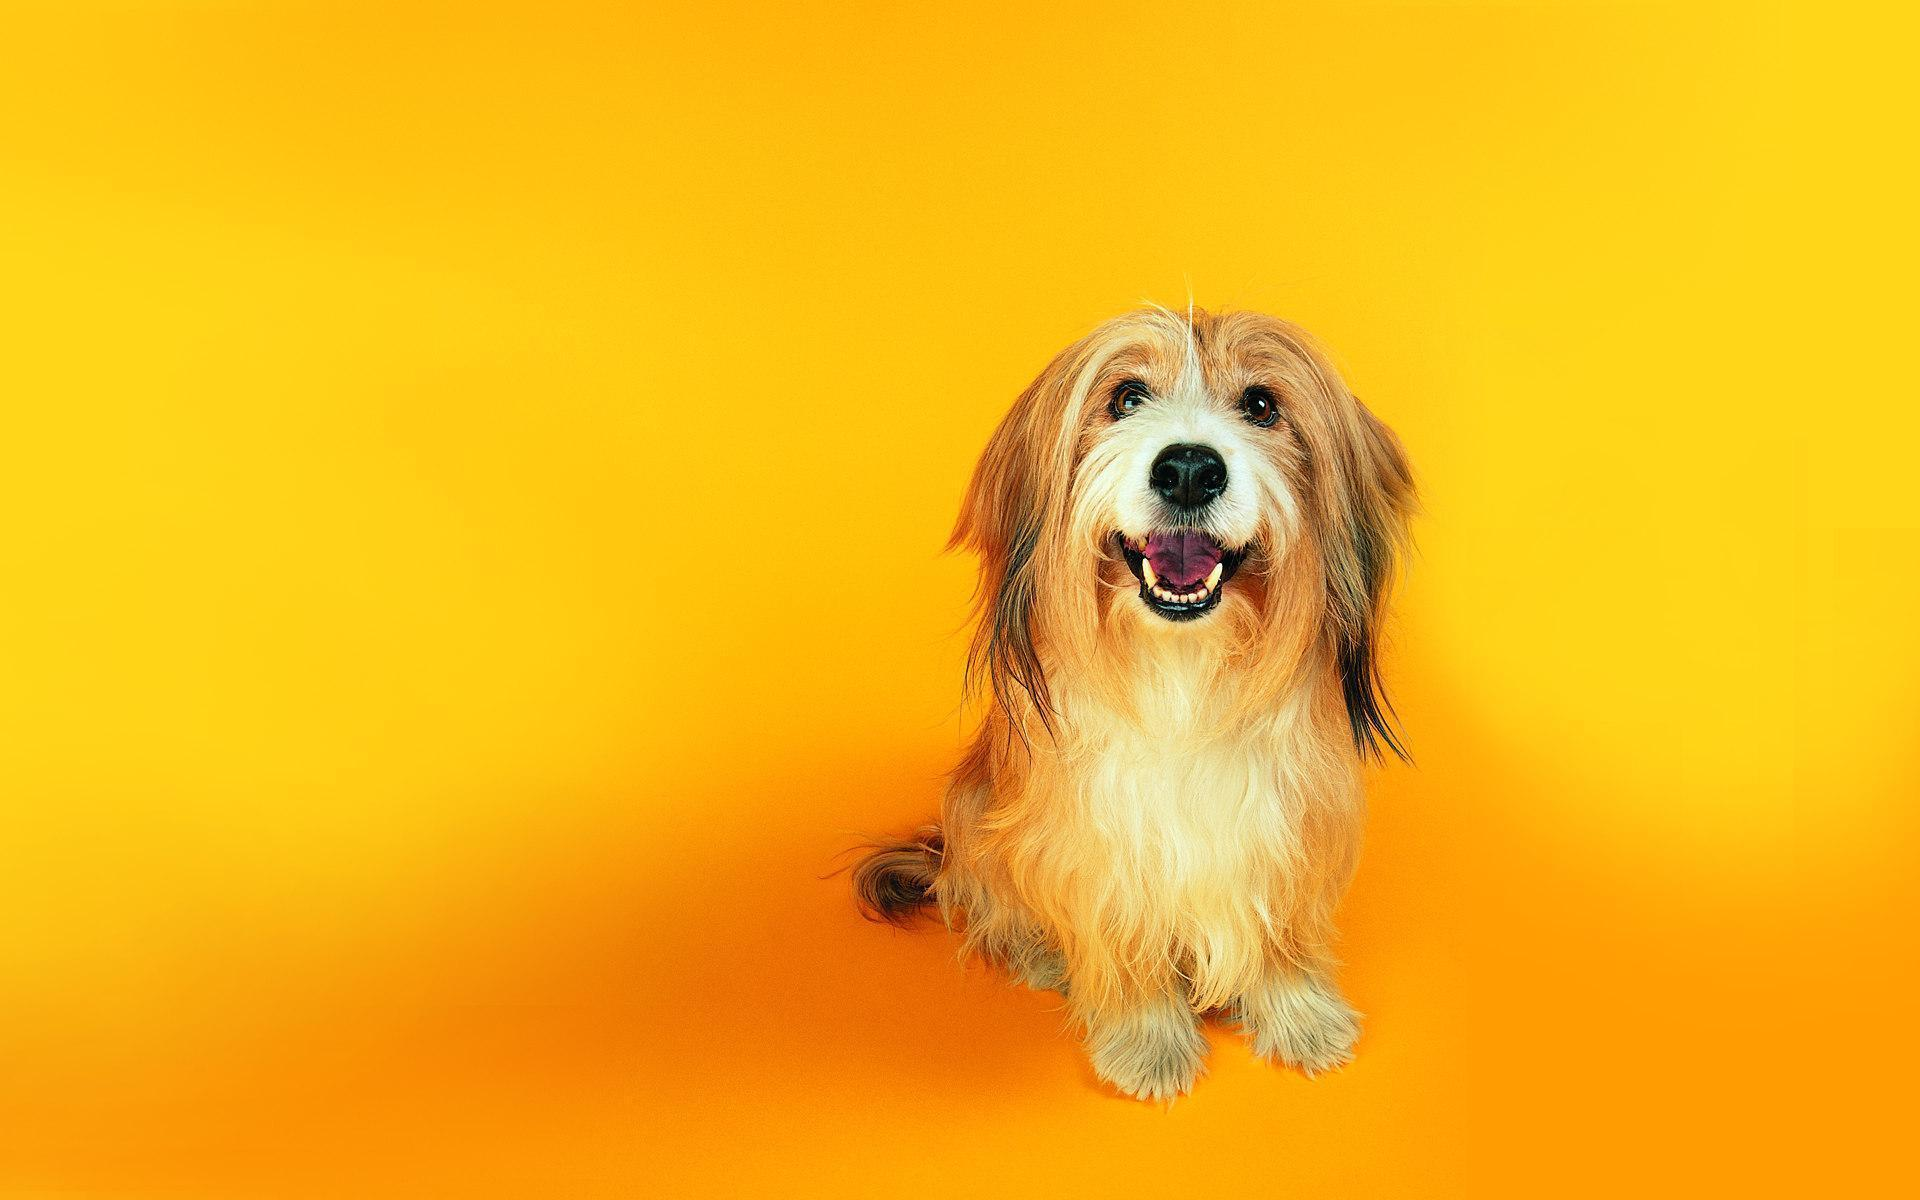 funny dogs wallpapers images photos pictures backgrounds